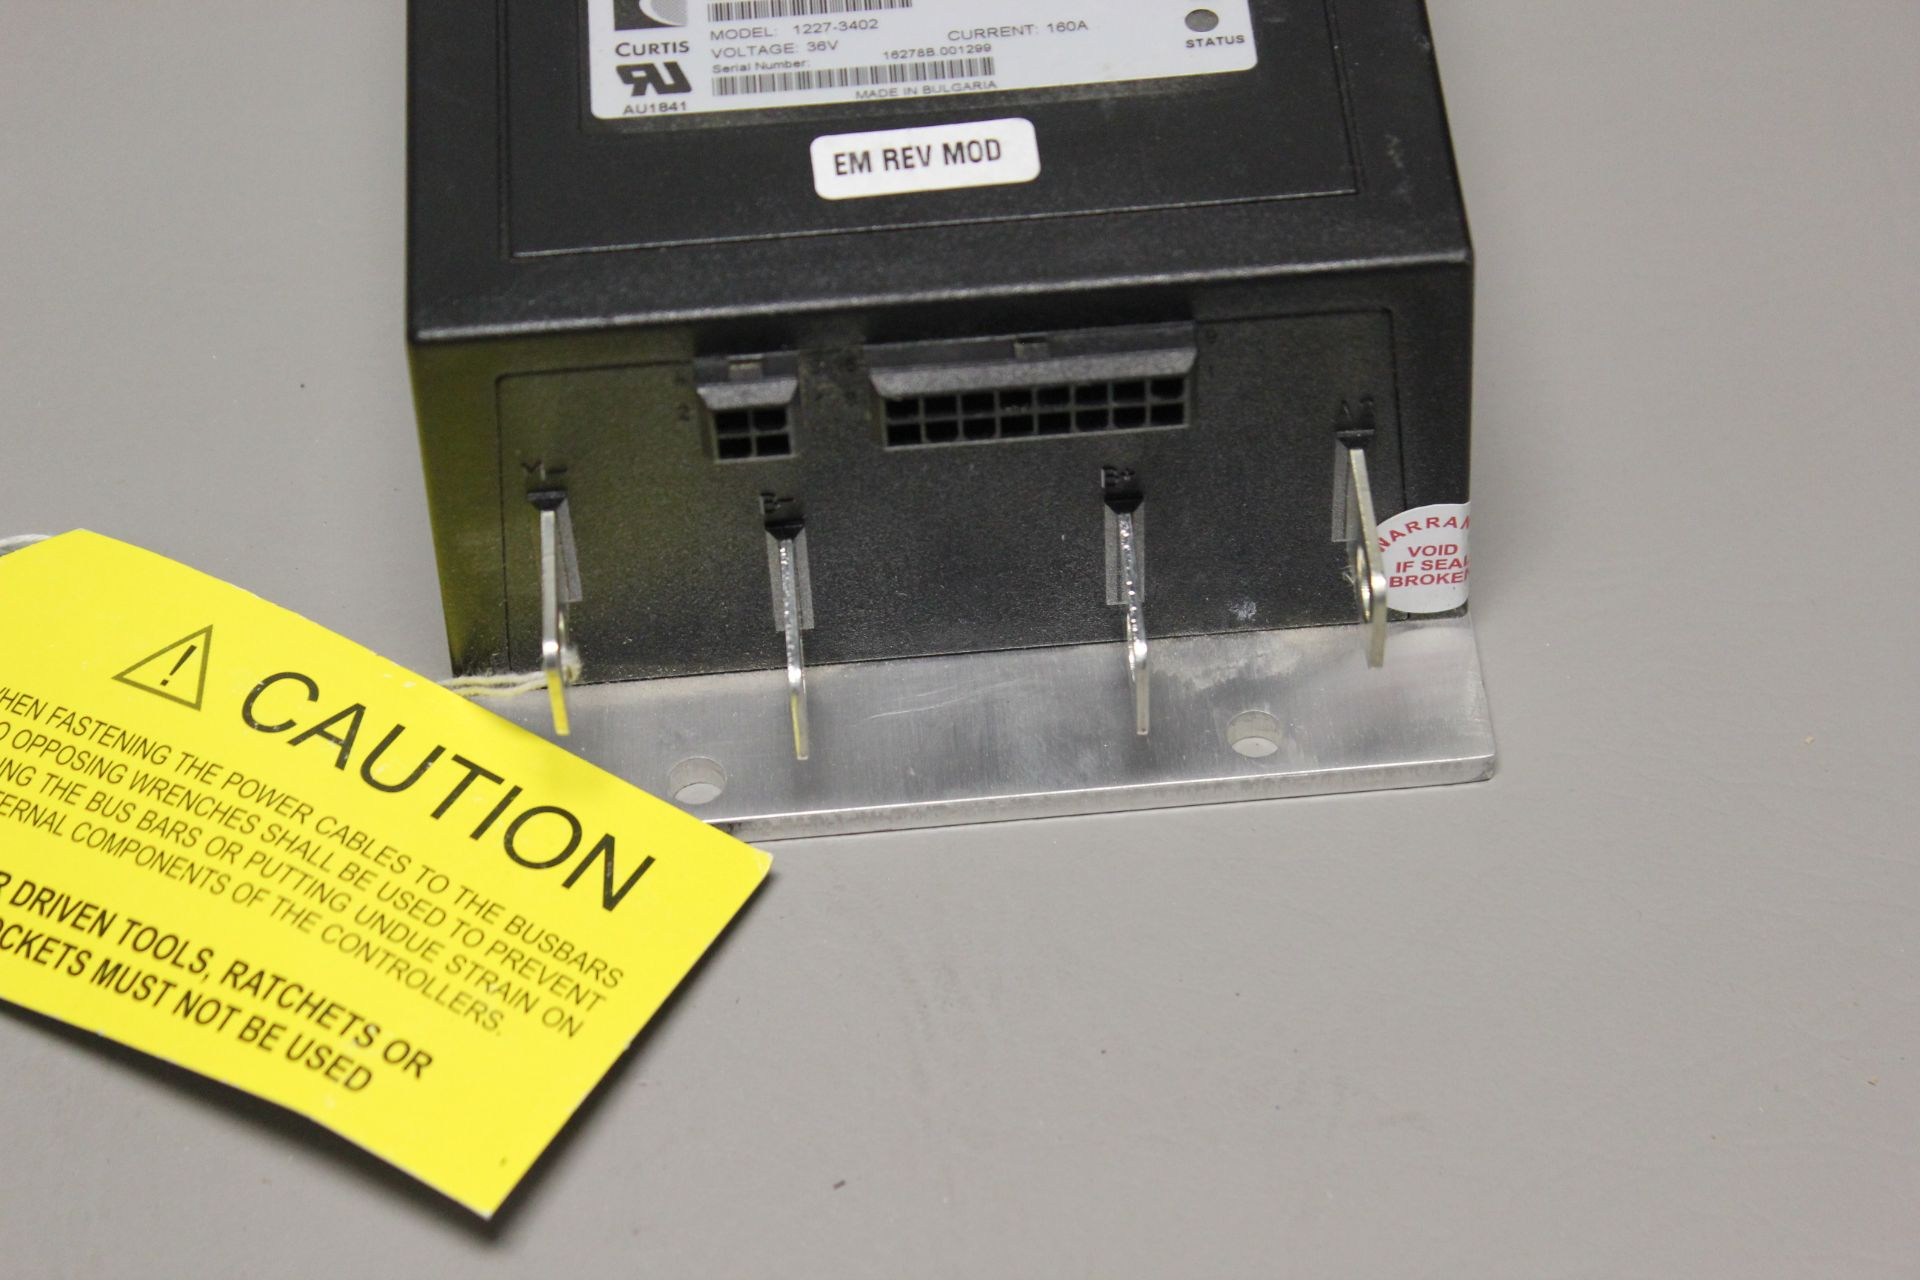 UNUSED CURTIS DC MOTOR CONTROLLER - Image 3 of 4